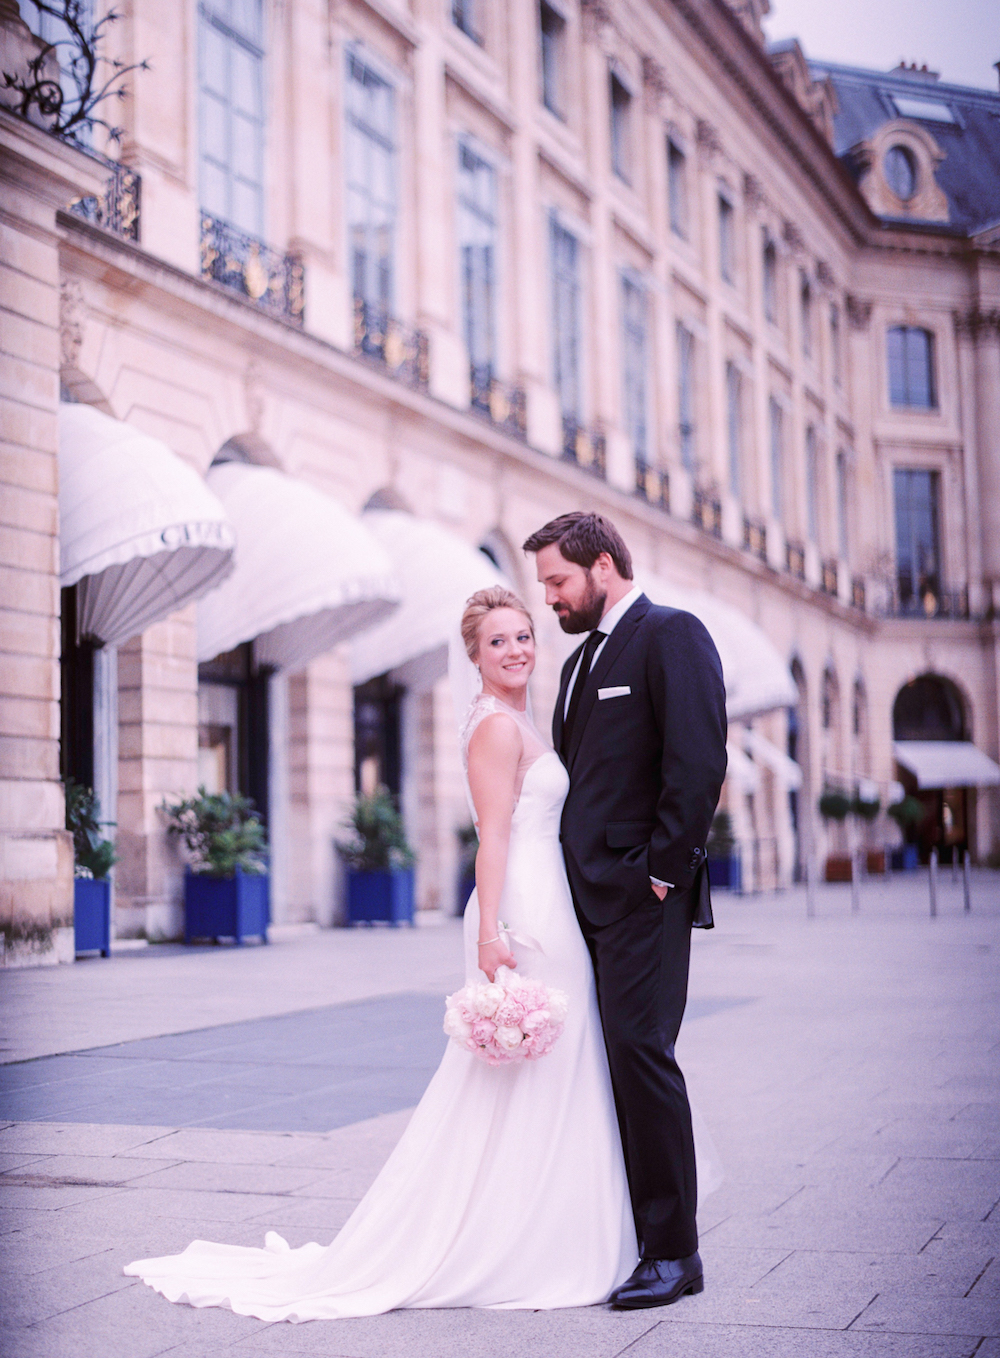 Wedding photo Place Vendome